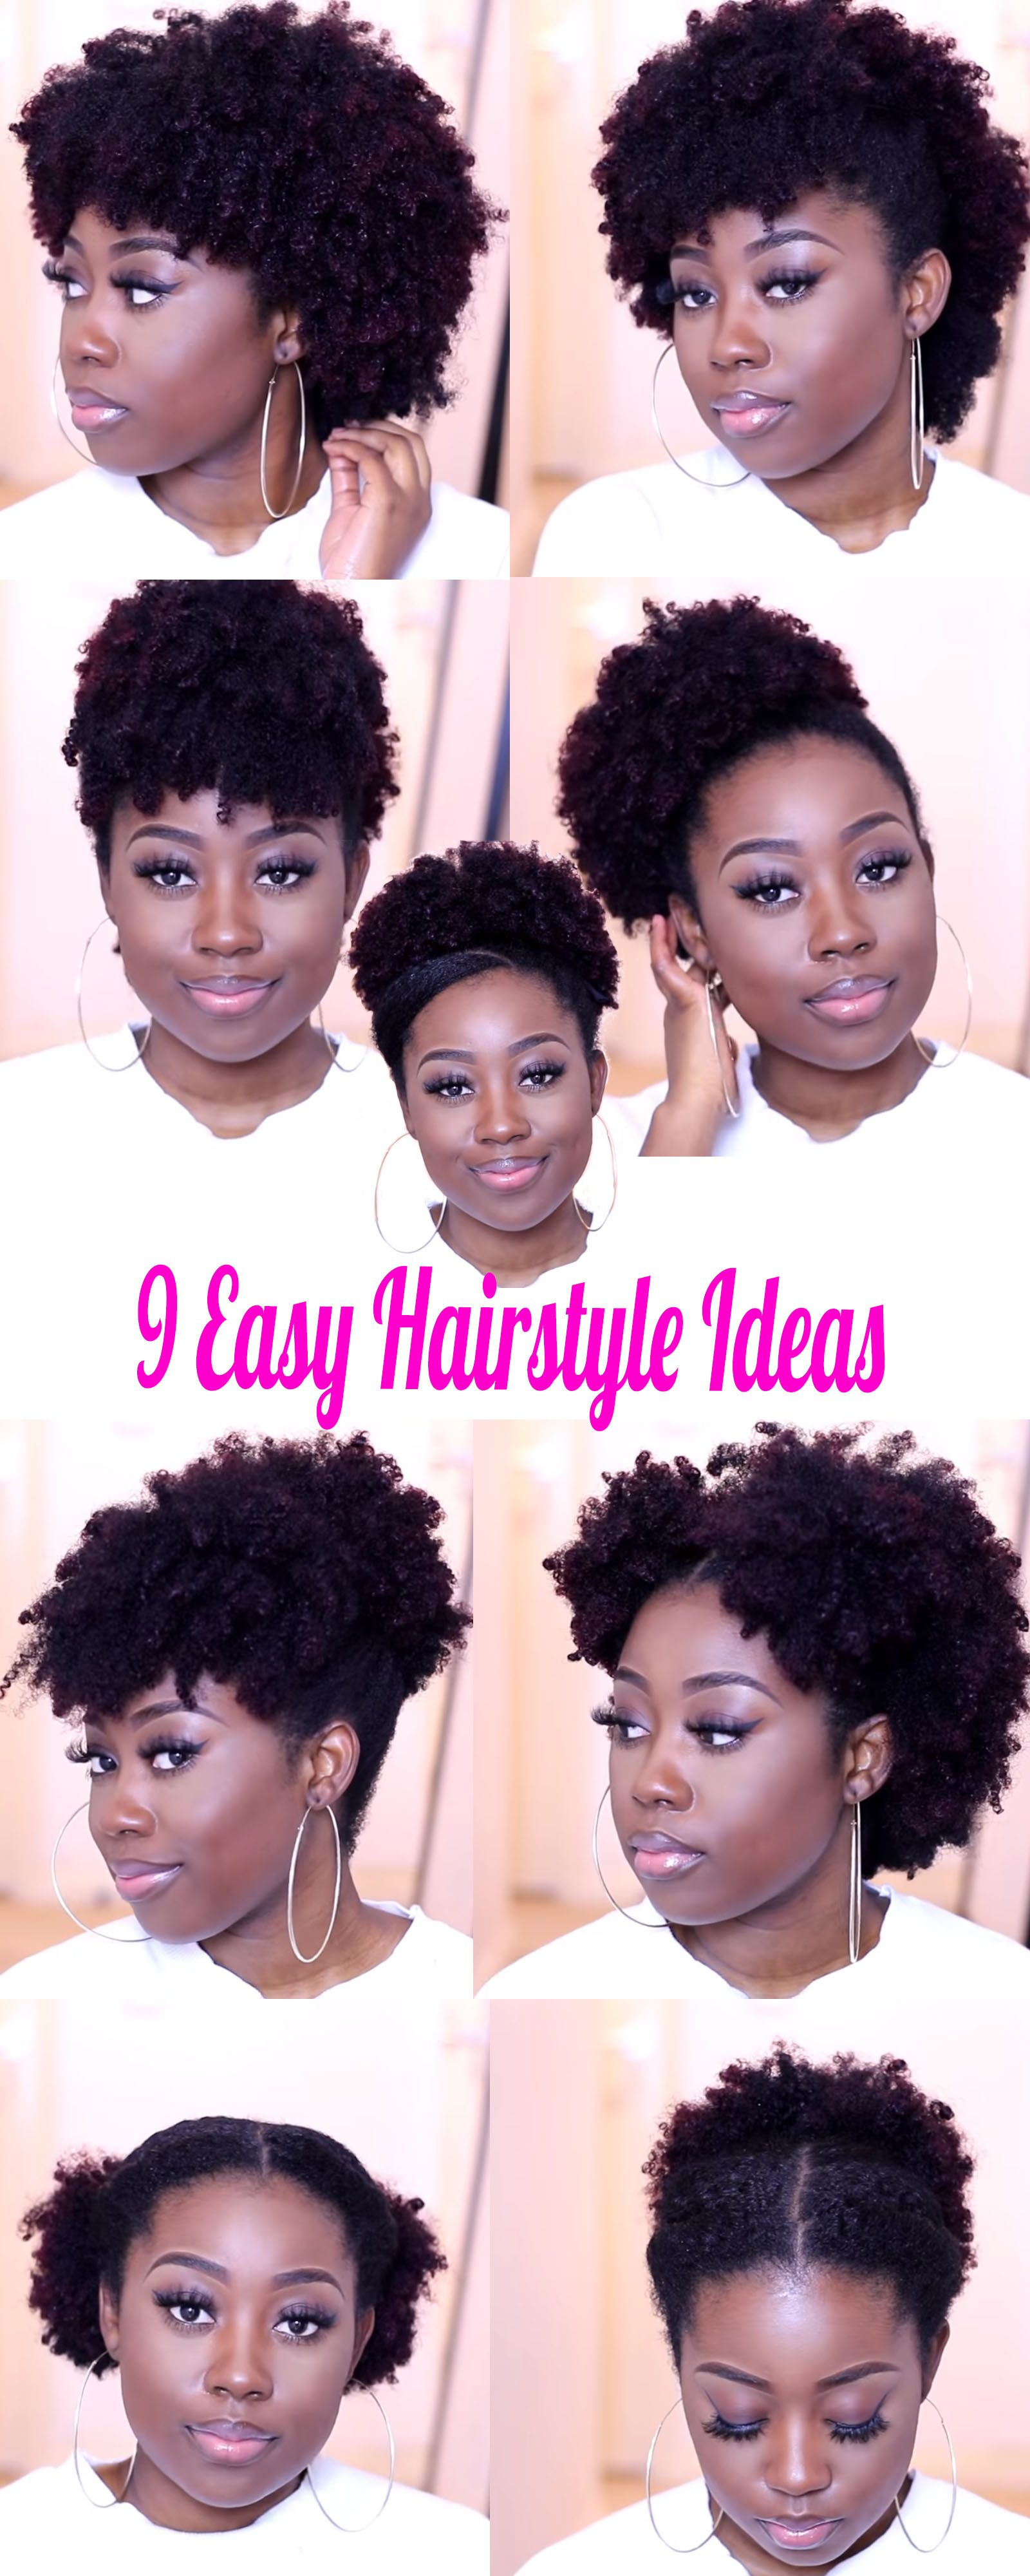 9 Medium Natural Hairstyle Ideas You Can Quickly Create On The Go